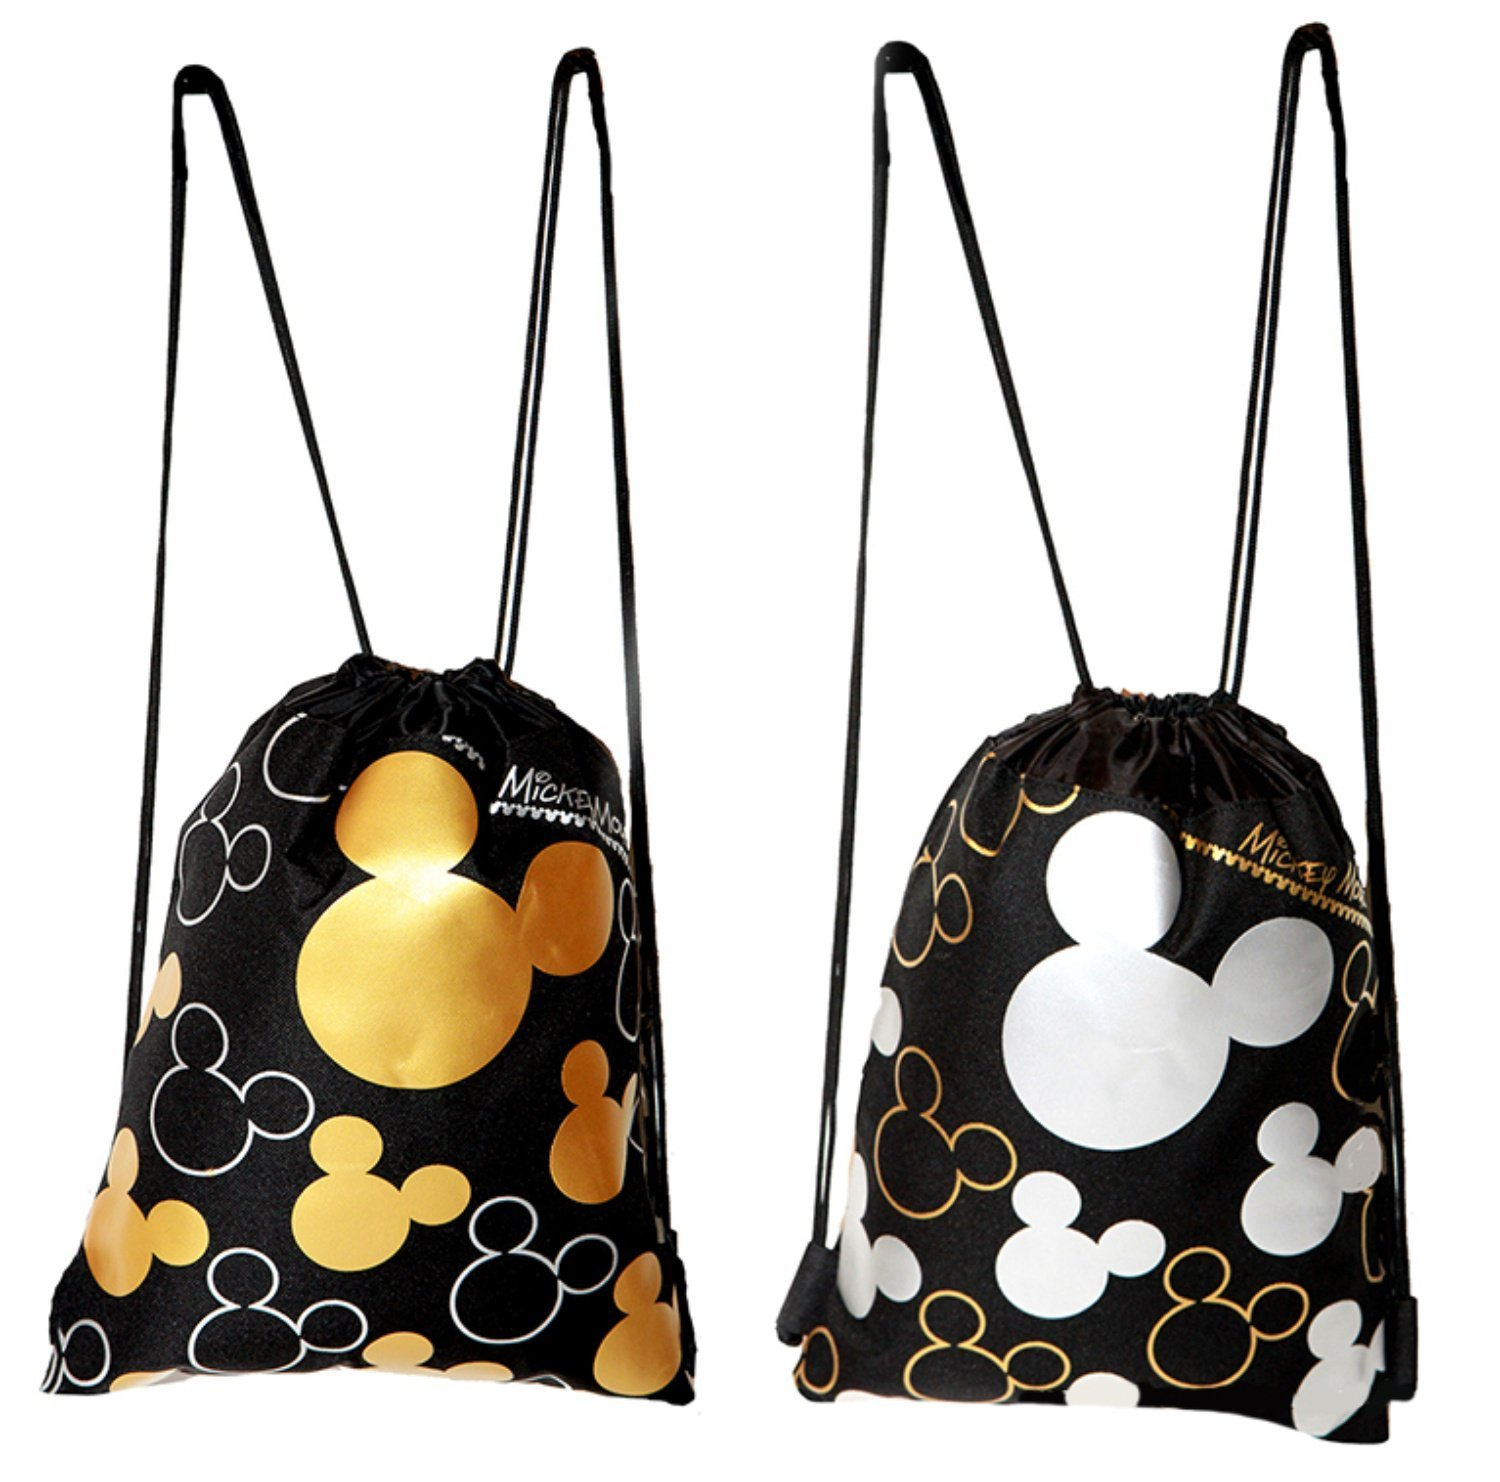 afbe6f1e4b6 Amazon.com  Disney Mickey Mouse Drawstring Backpack 2 Pack  Toys   Games